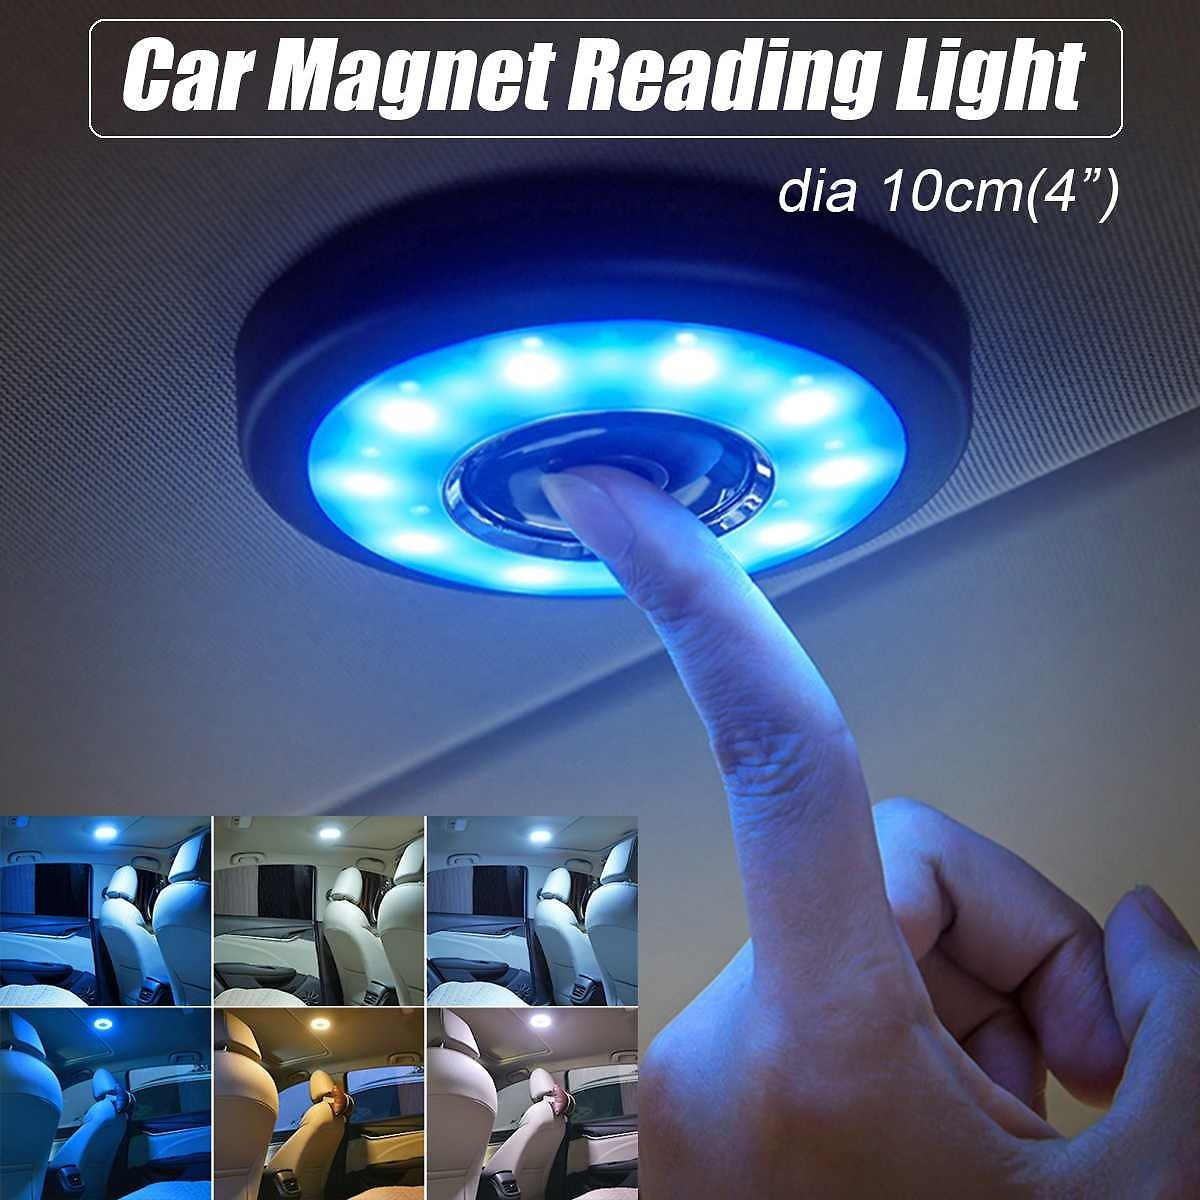 US $6.99 30% OFF|LED Car Interior Reading Light Auto USB Charging Roof Magnet Auto Day Light Trunk Drl Square Dome Vehicle Indoor Ceiling Lamp|Ornaments| - AliExpress